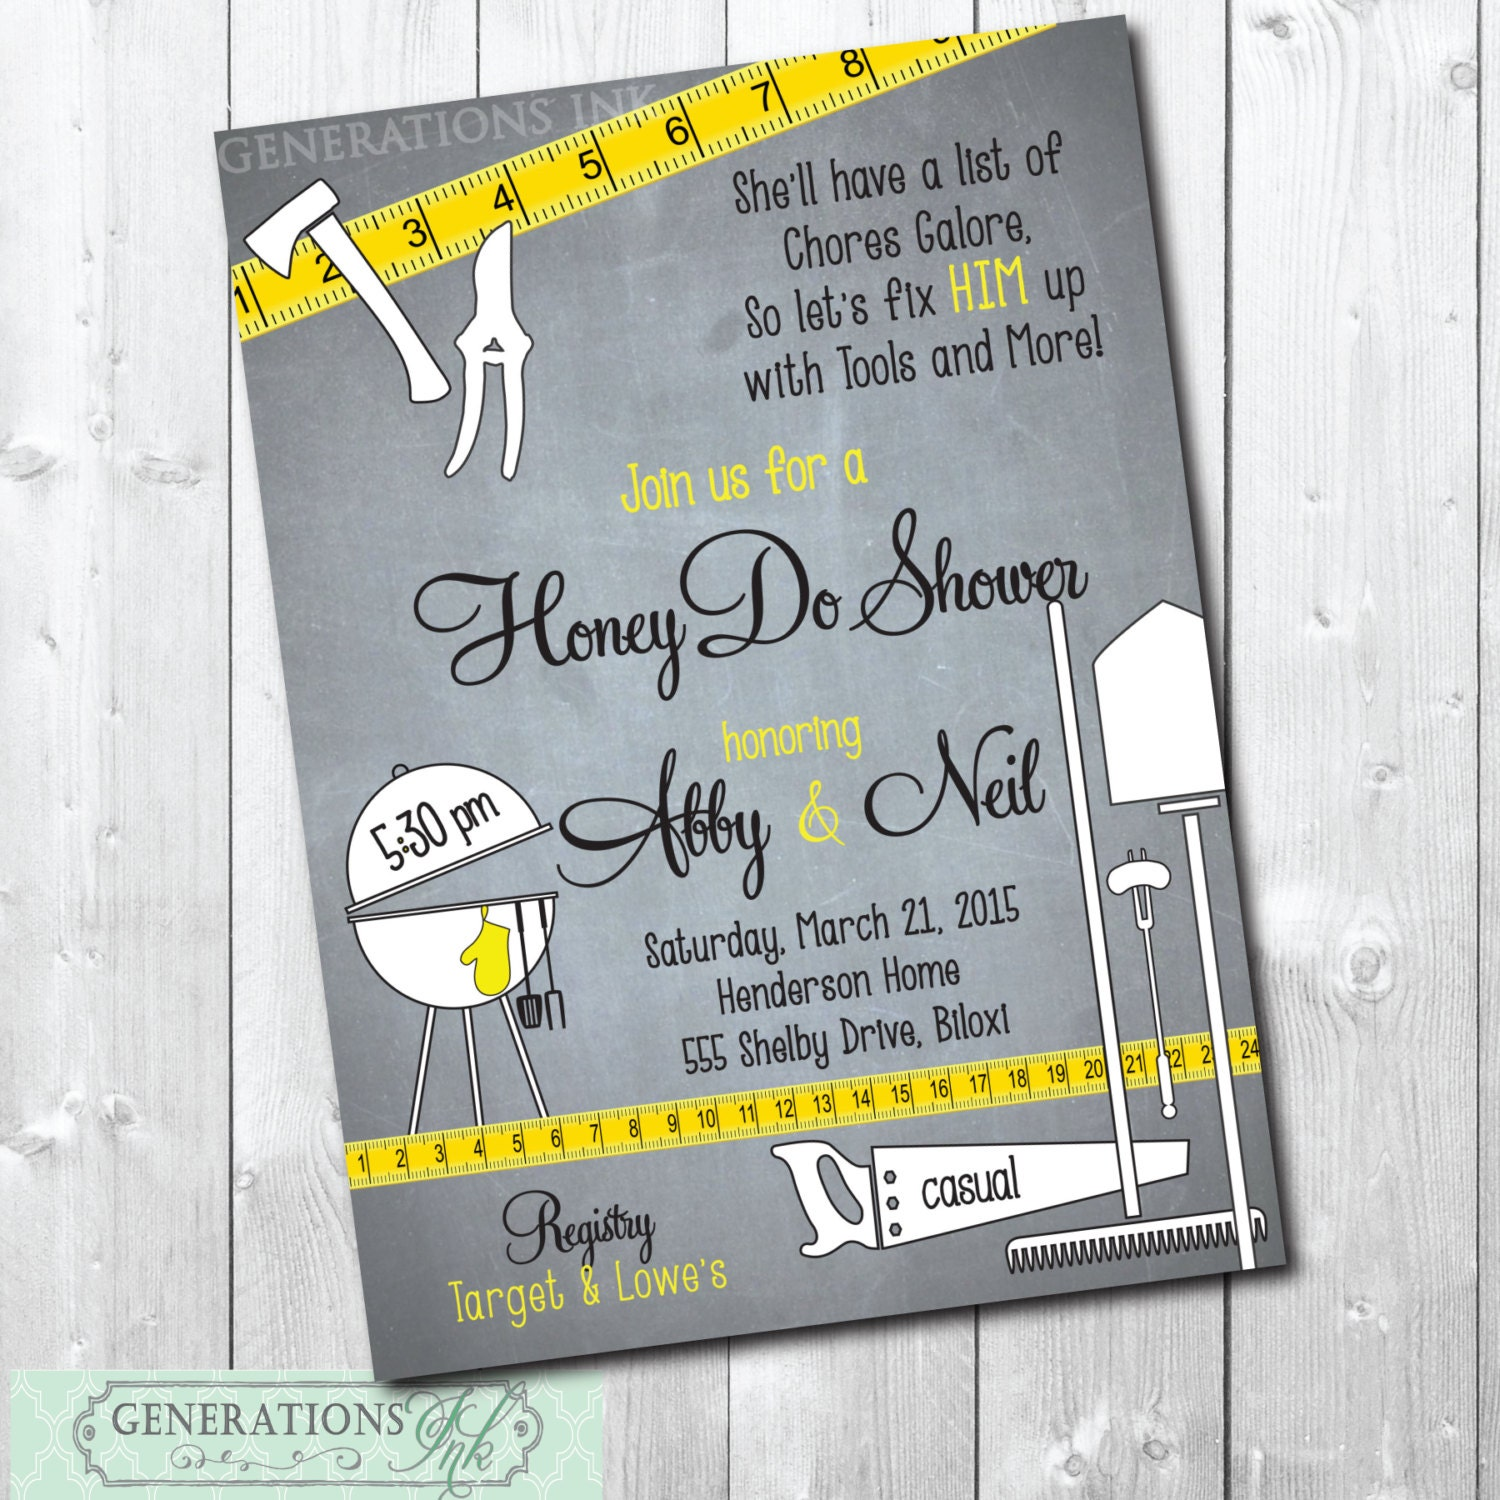 Reception Invitations Wording was beautiful invitations template